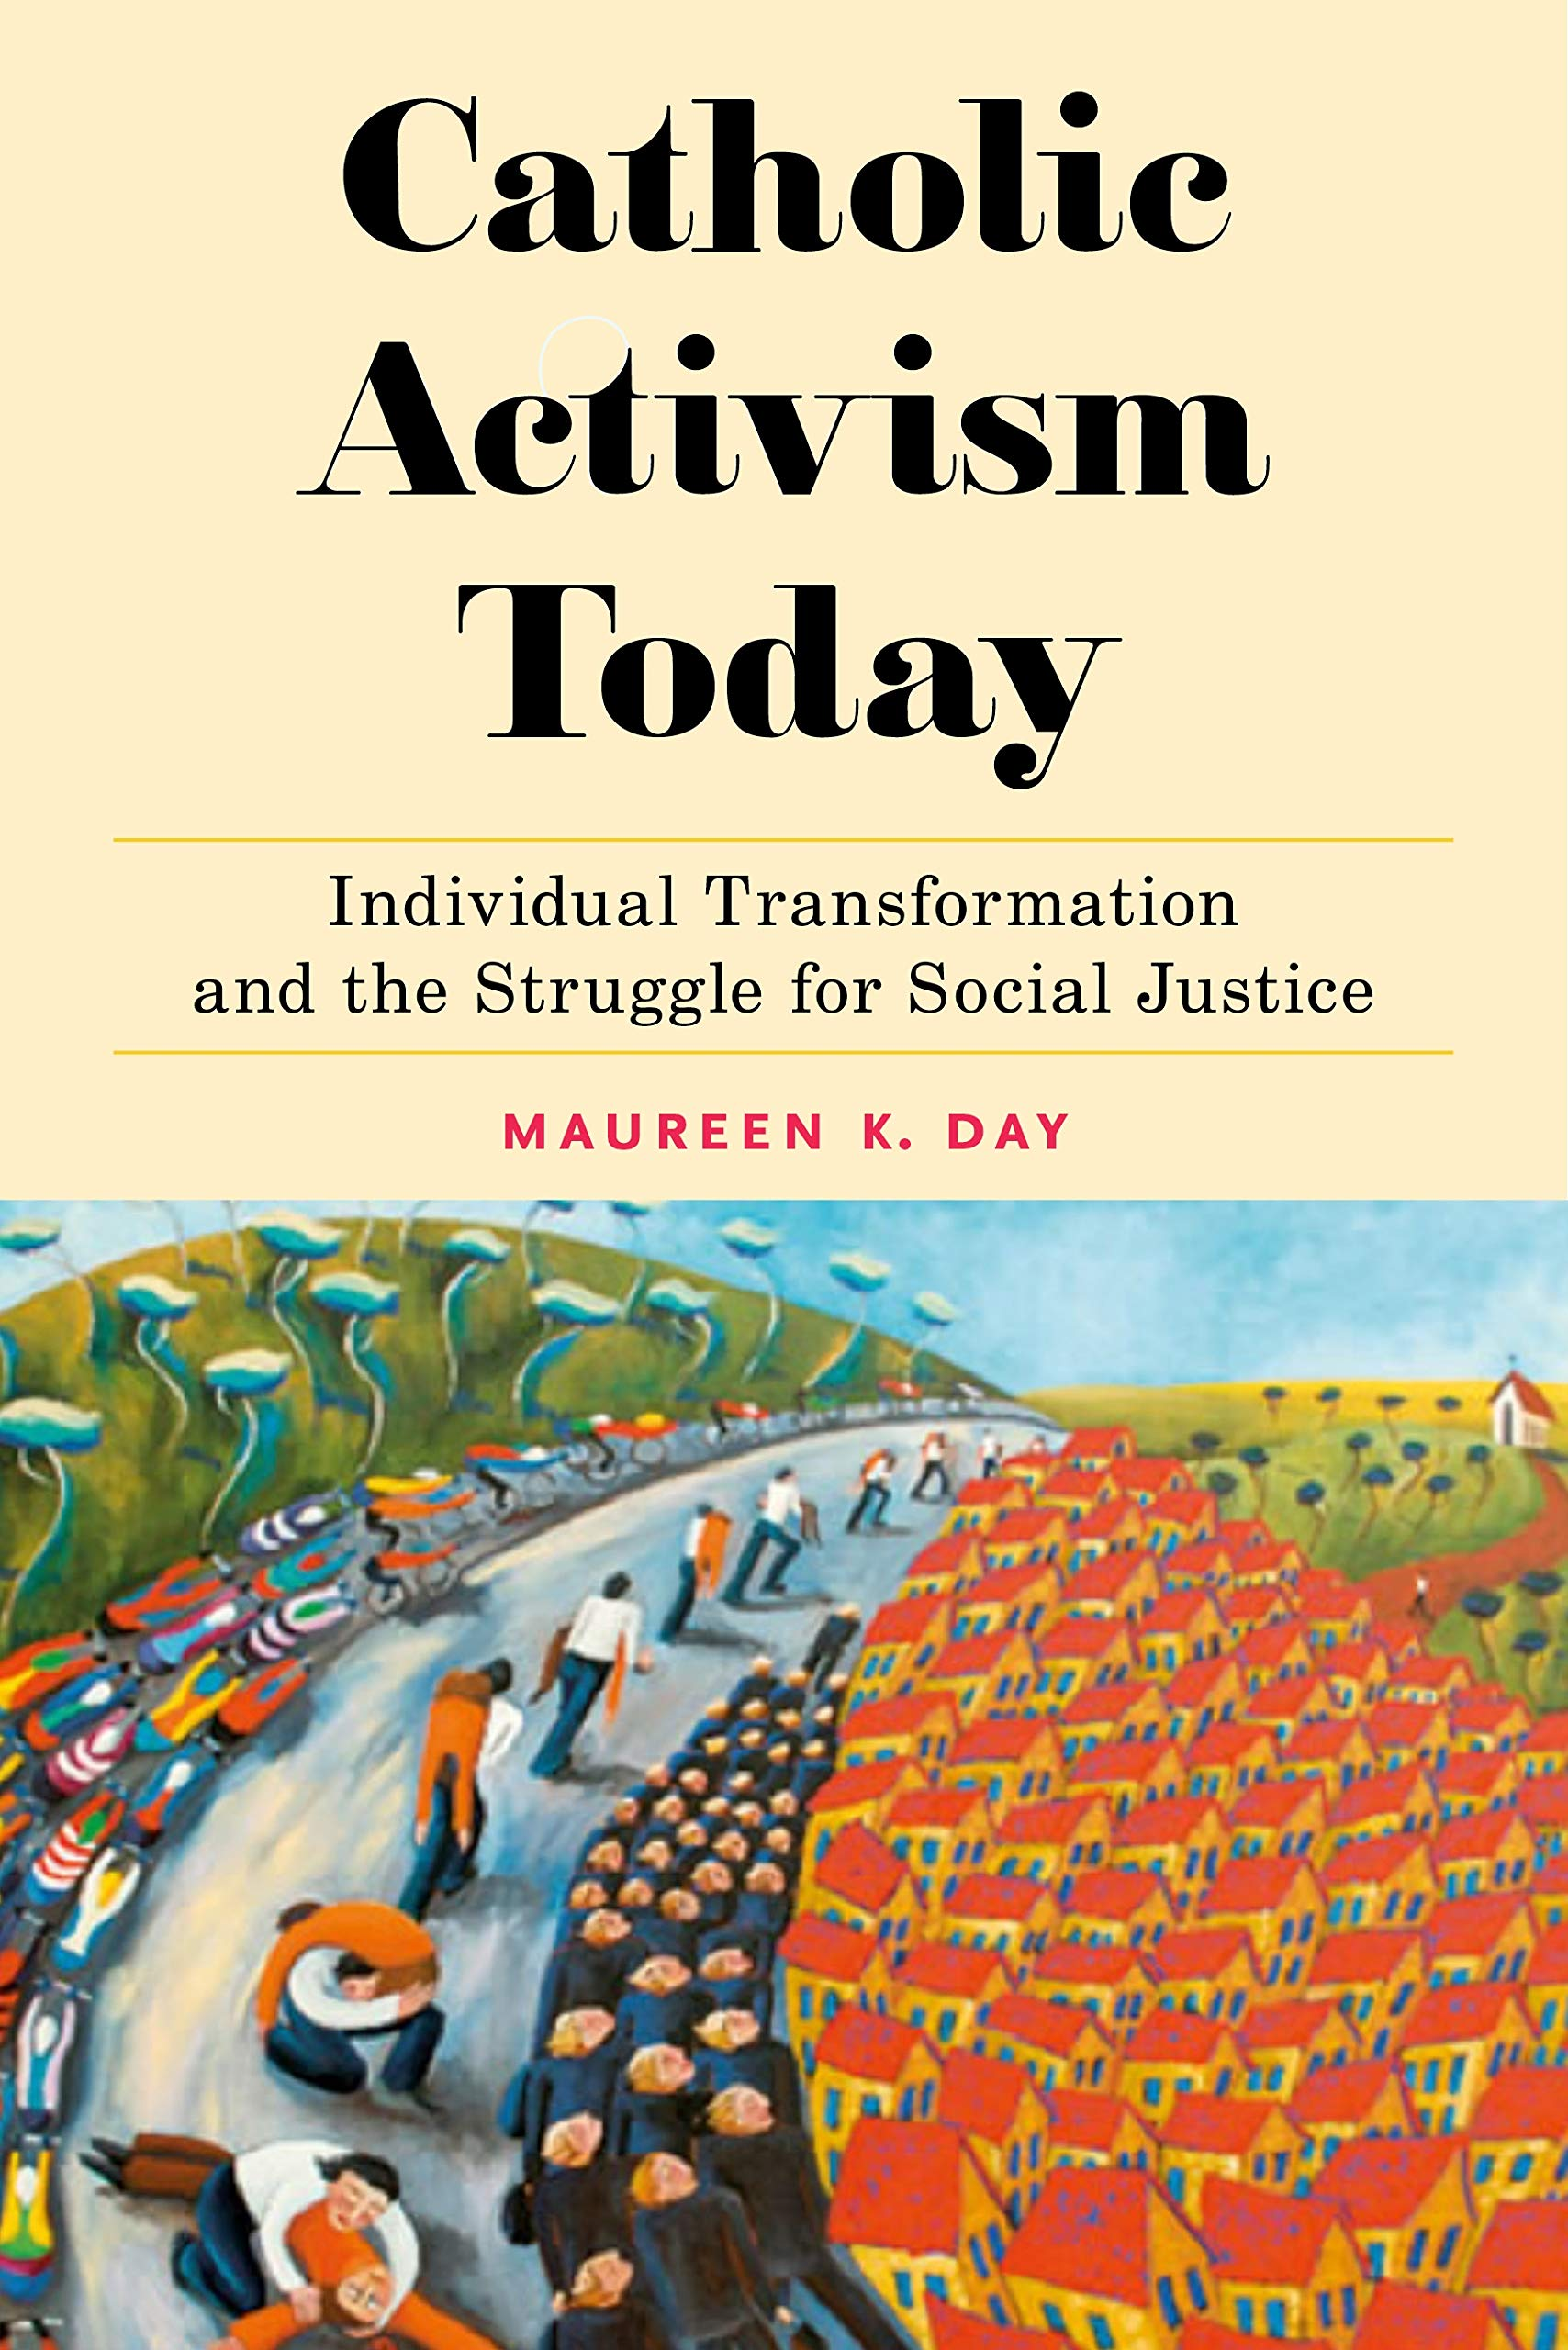 Catholic Activism Today: Individual Transformation and the Struggle for  Social Justice (Religion and Social Transformation): Day, Maureen K.:  9781479851331: Amazon.com: Books